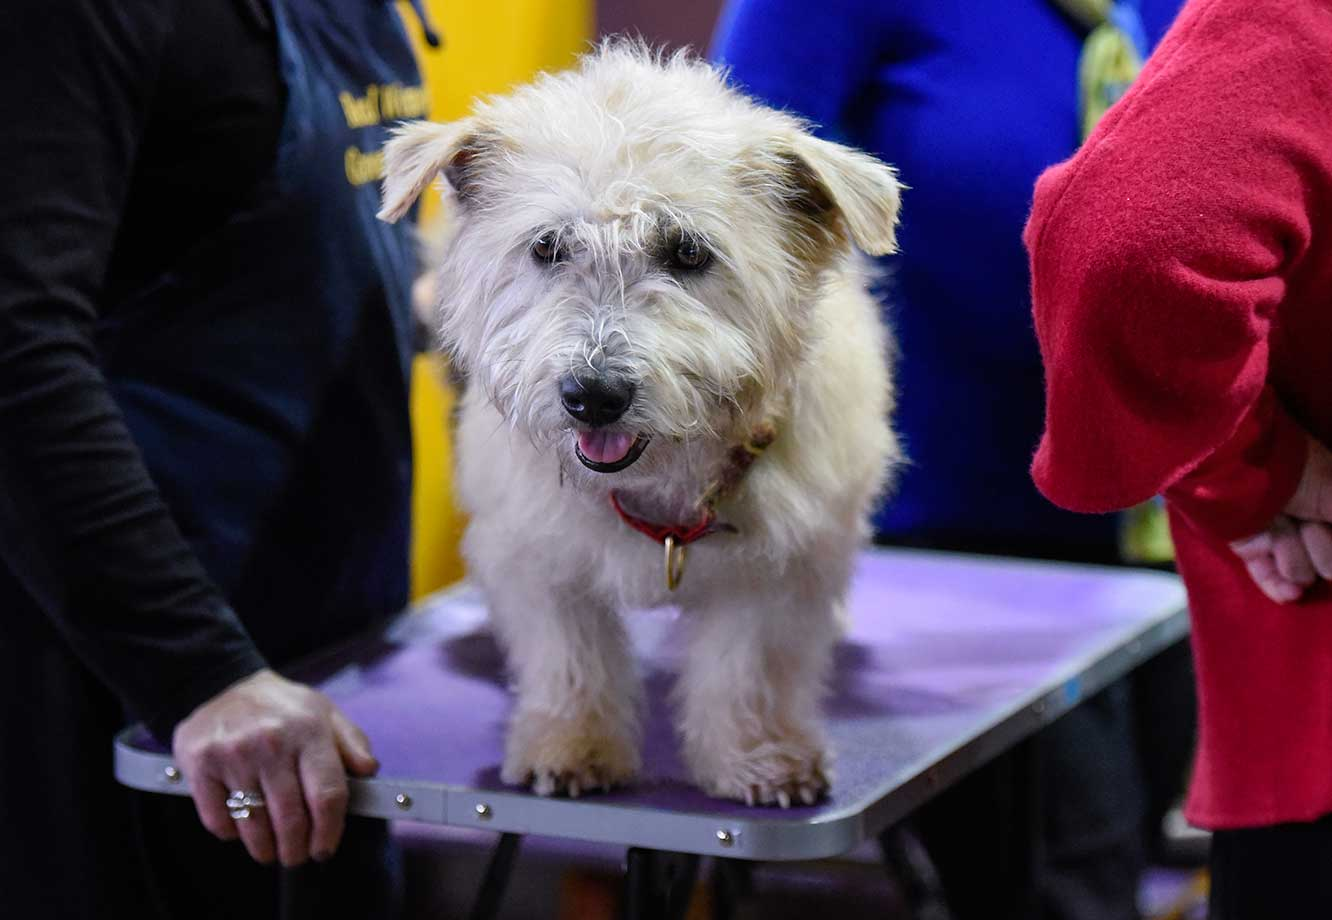 A dog waits in the grooming area during day two of competition of the Westminster Kennel Club dog show.